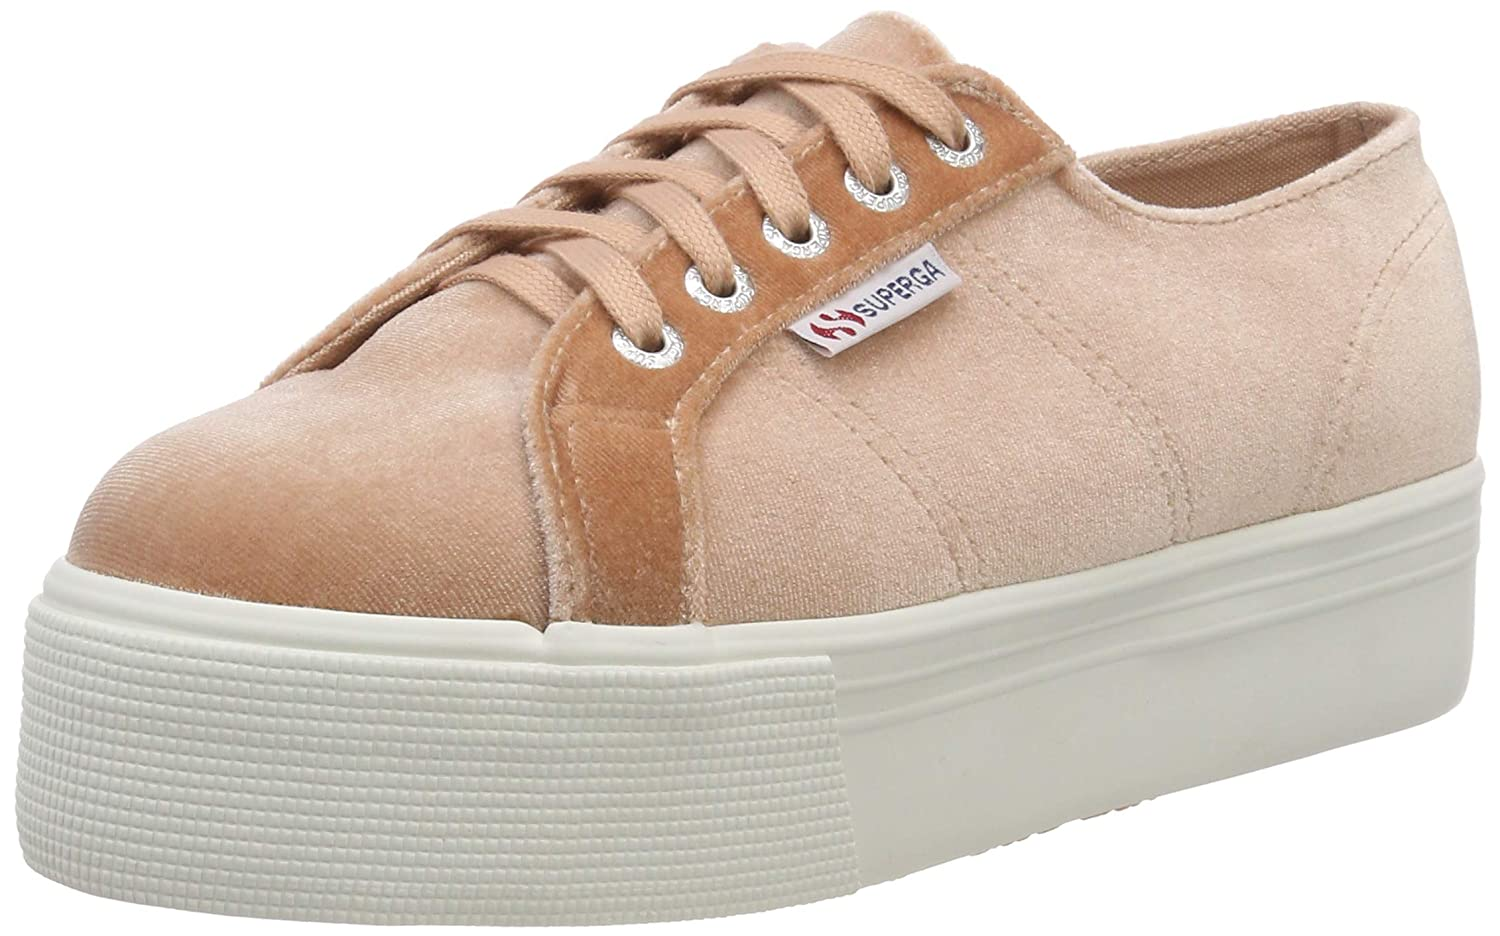 Superga Damen 2790-velvetchenillew Sneaker Pink Pink Pink (Pink Dusty Coral 918) e8714a